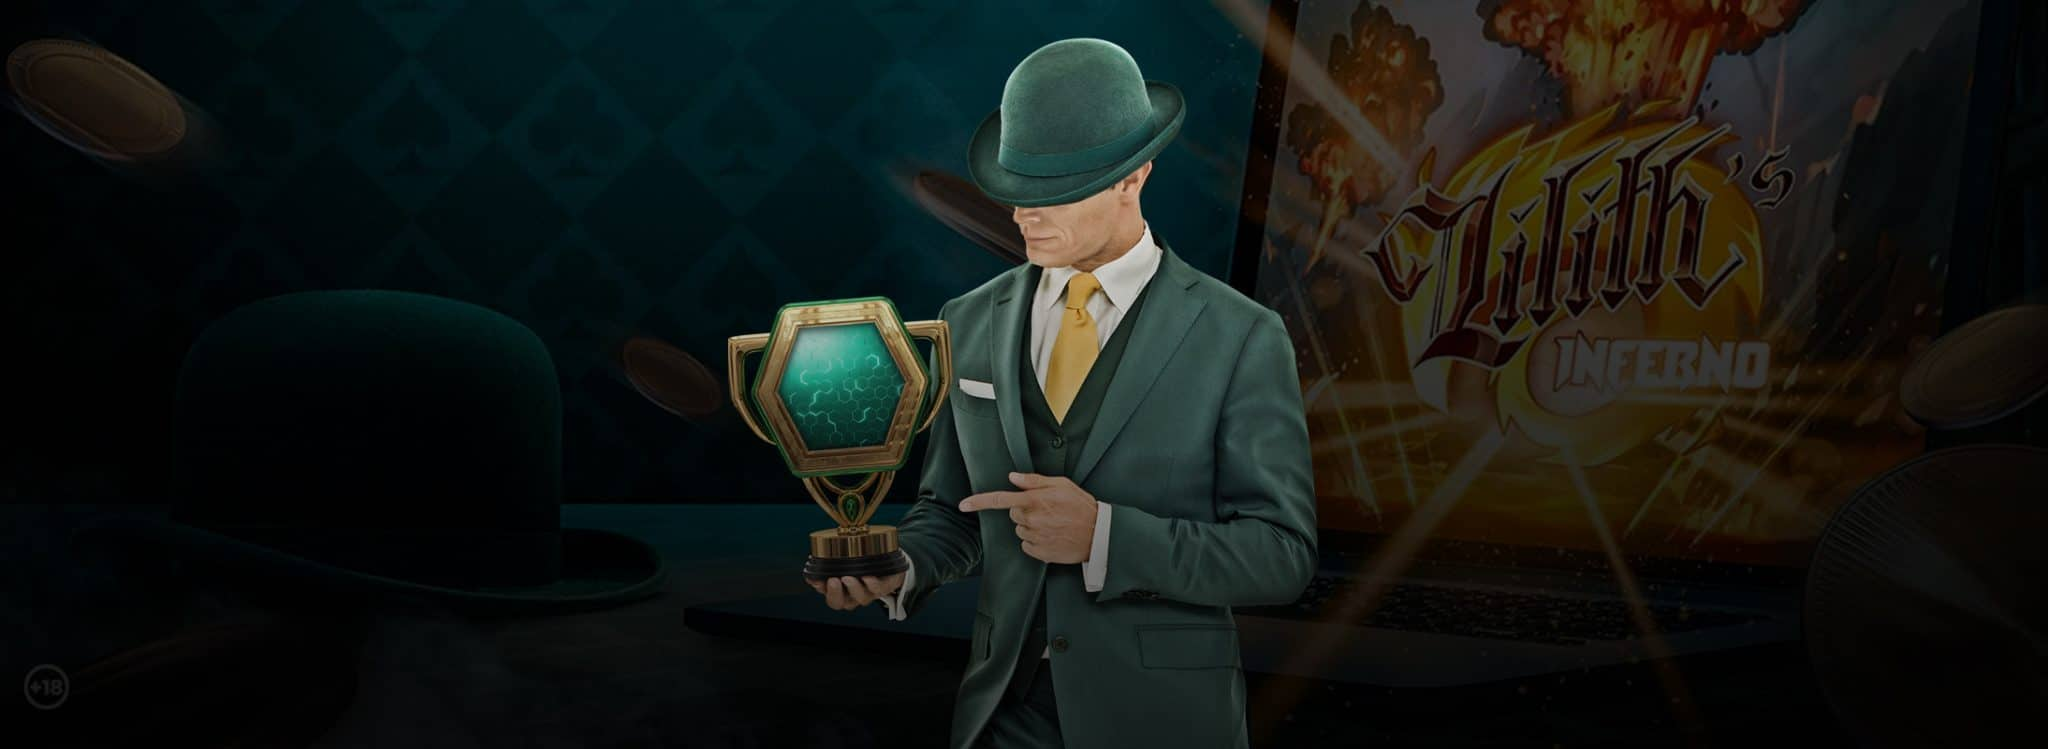 Unlock Spins And Cash Wins With The Mr Green Ultimate Dragon Challenge